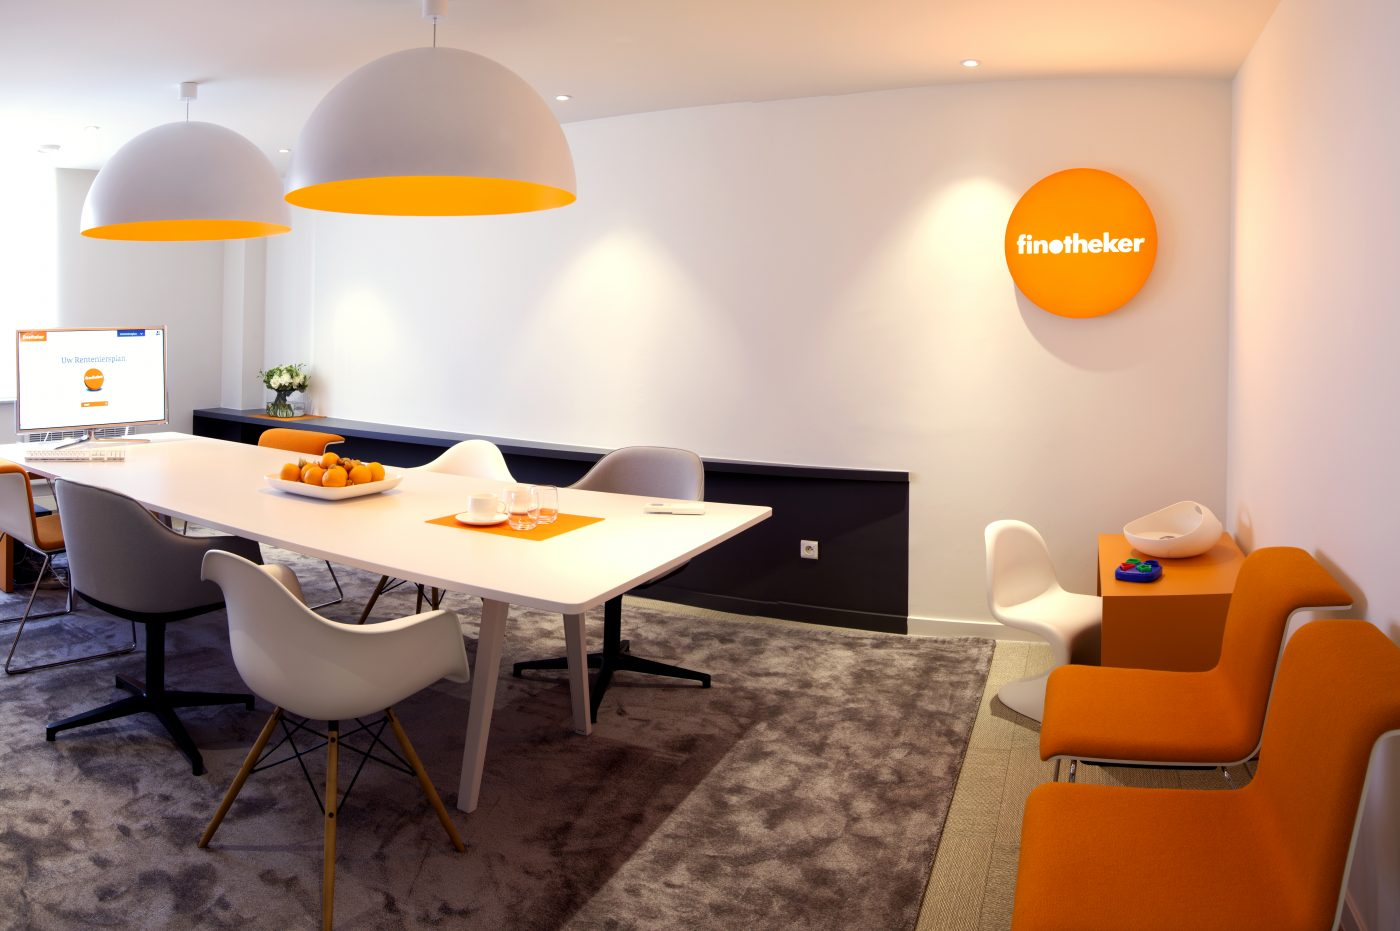 Meeting space in white and orange